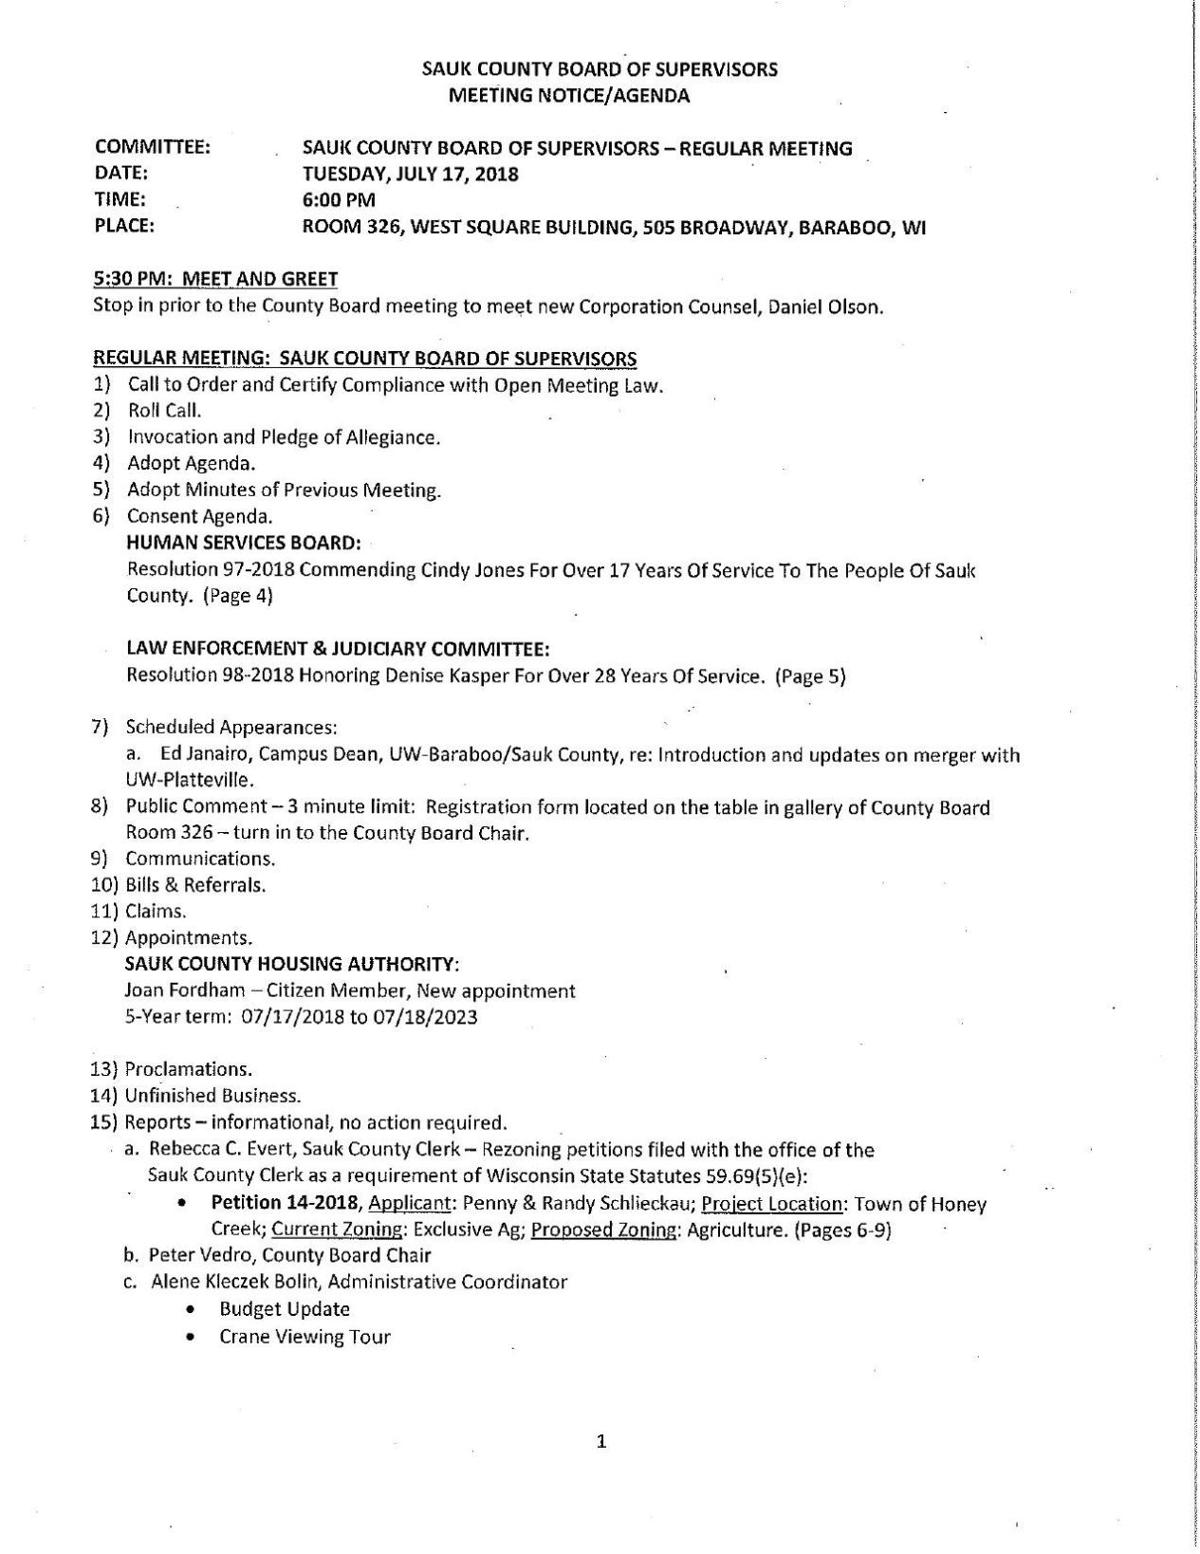 Sauk County Board agenda